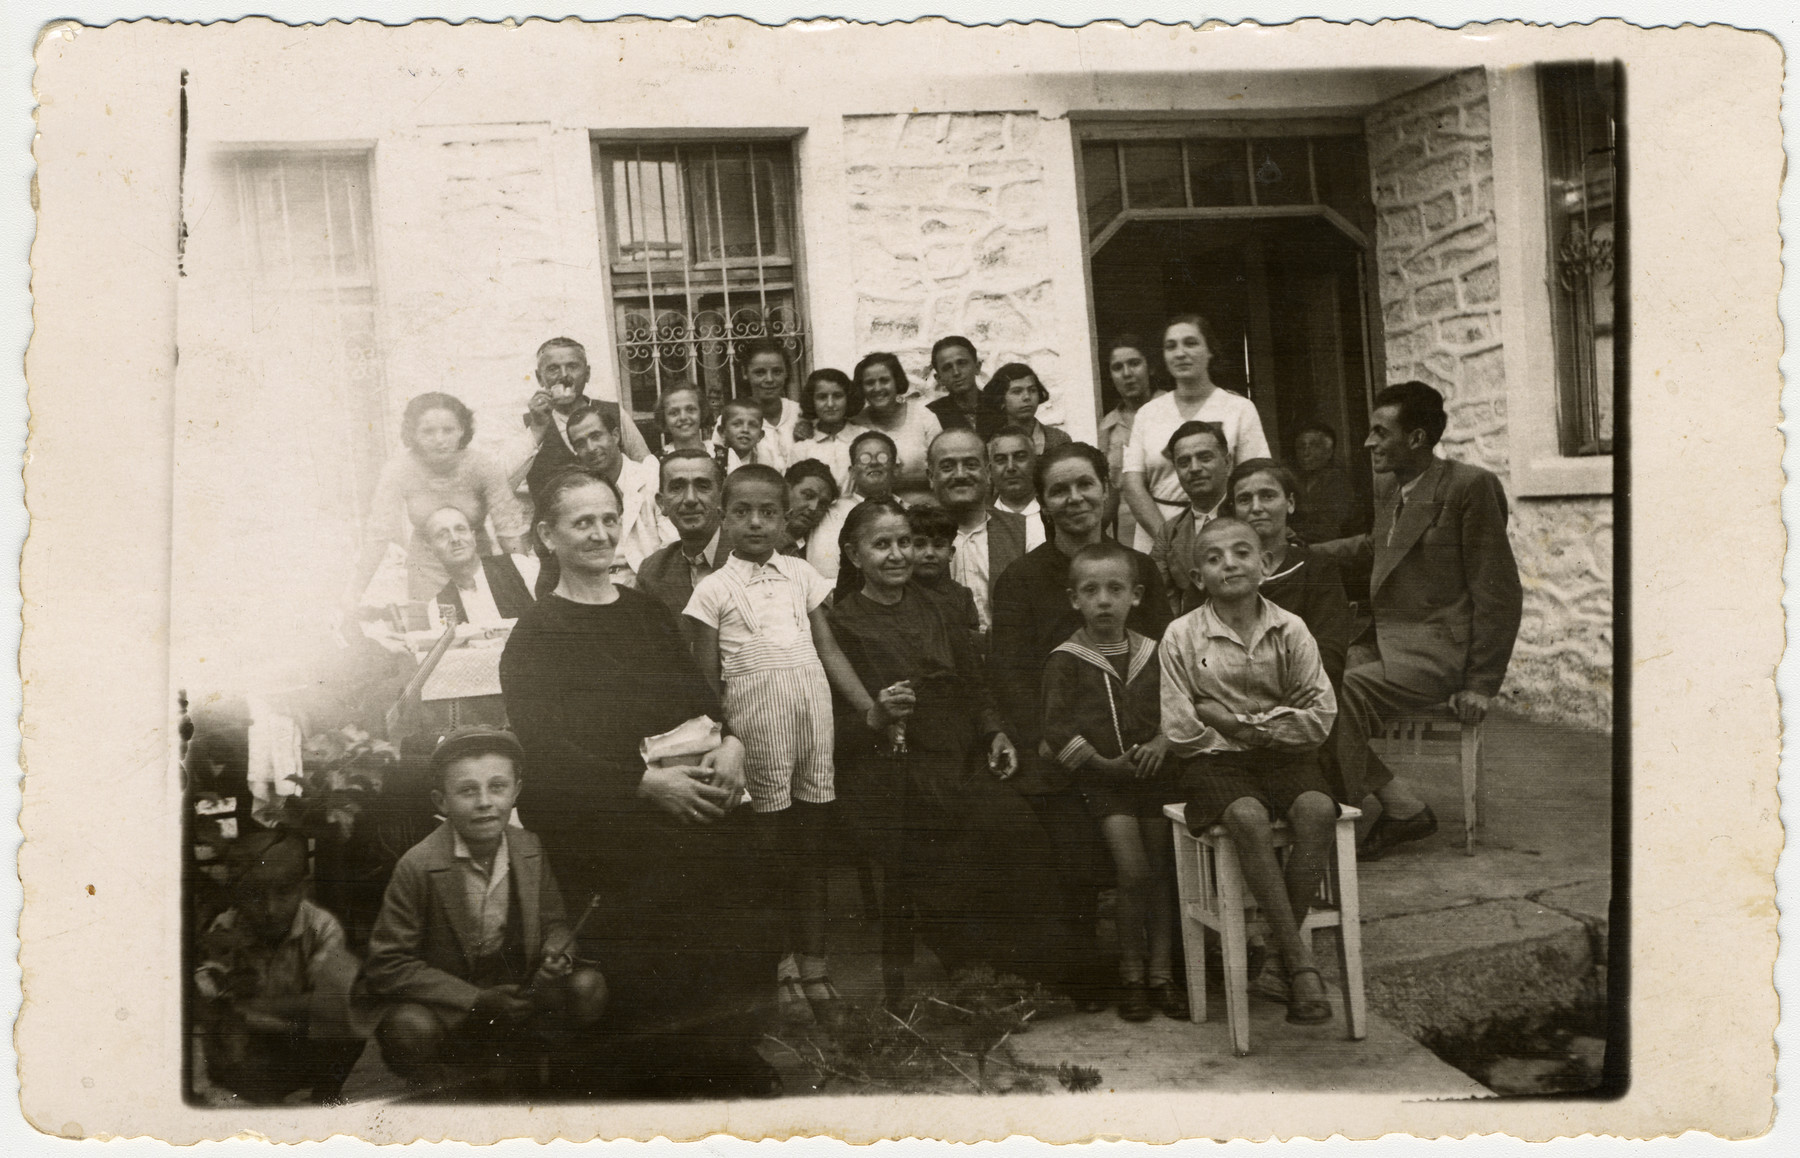 Two Macedonian families vacation together.  Among those pictured are Estarina, Bela, Jamila, Kalef, Menachem, and Rachel Kolonomos (center), at the country house of their neighbors Teliko and  Antigona Tahula.